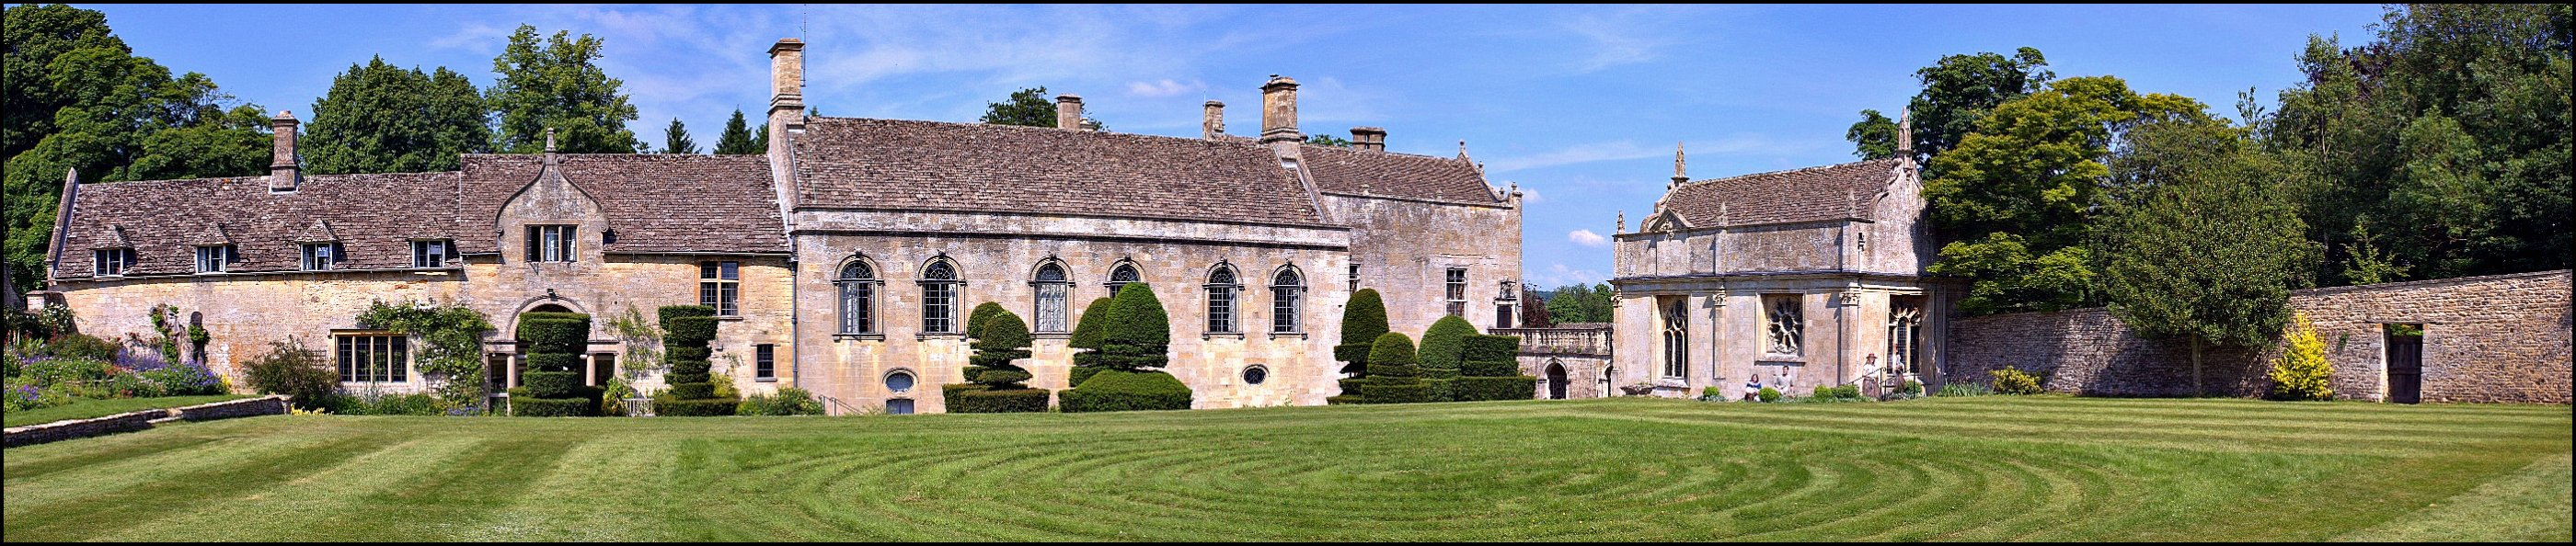 Burford Priory